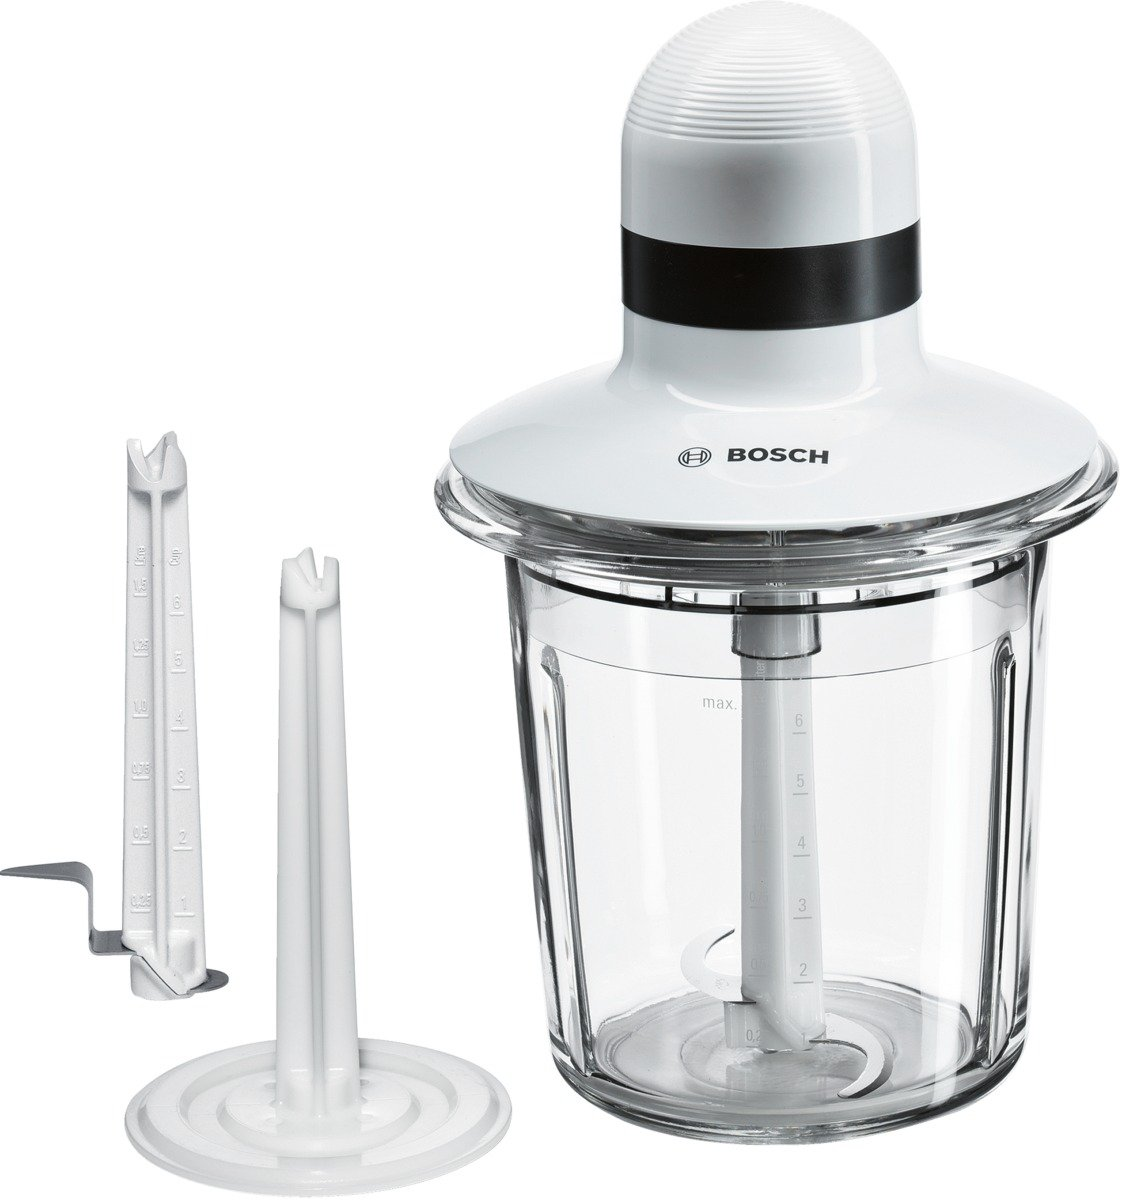 Bosch MMR15A1 Food Processor, 1.5 Litre, White [Energy Class A] BSH Home Appliances Ltd